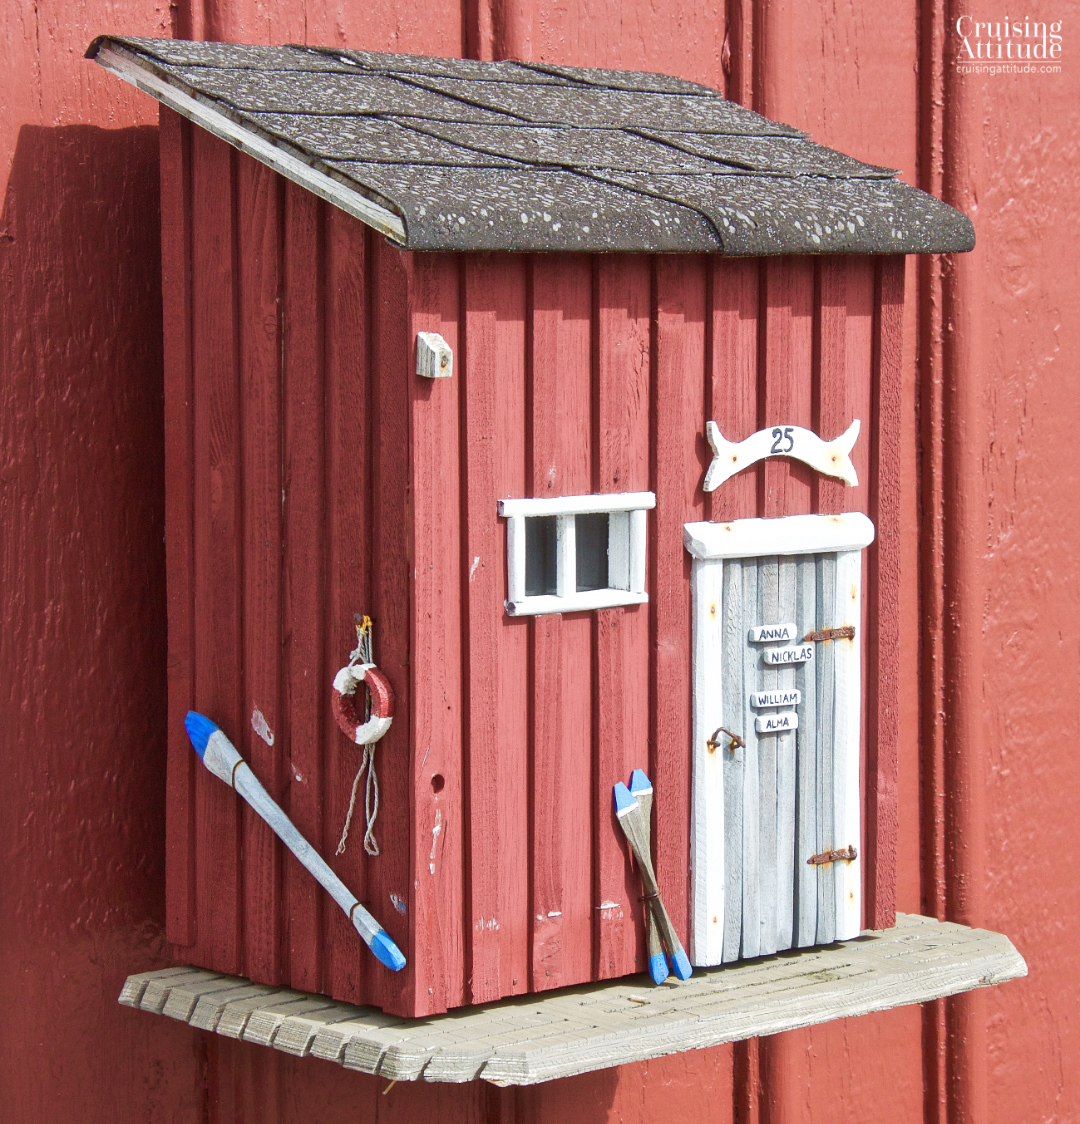 A lovely mailbox in the village of Mollösund, Sweden | Cruising Attitude Sailing Blog - Discovery 55